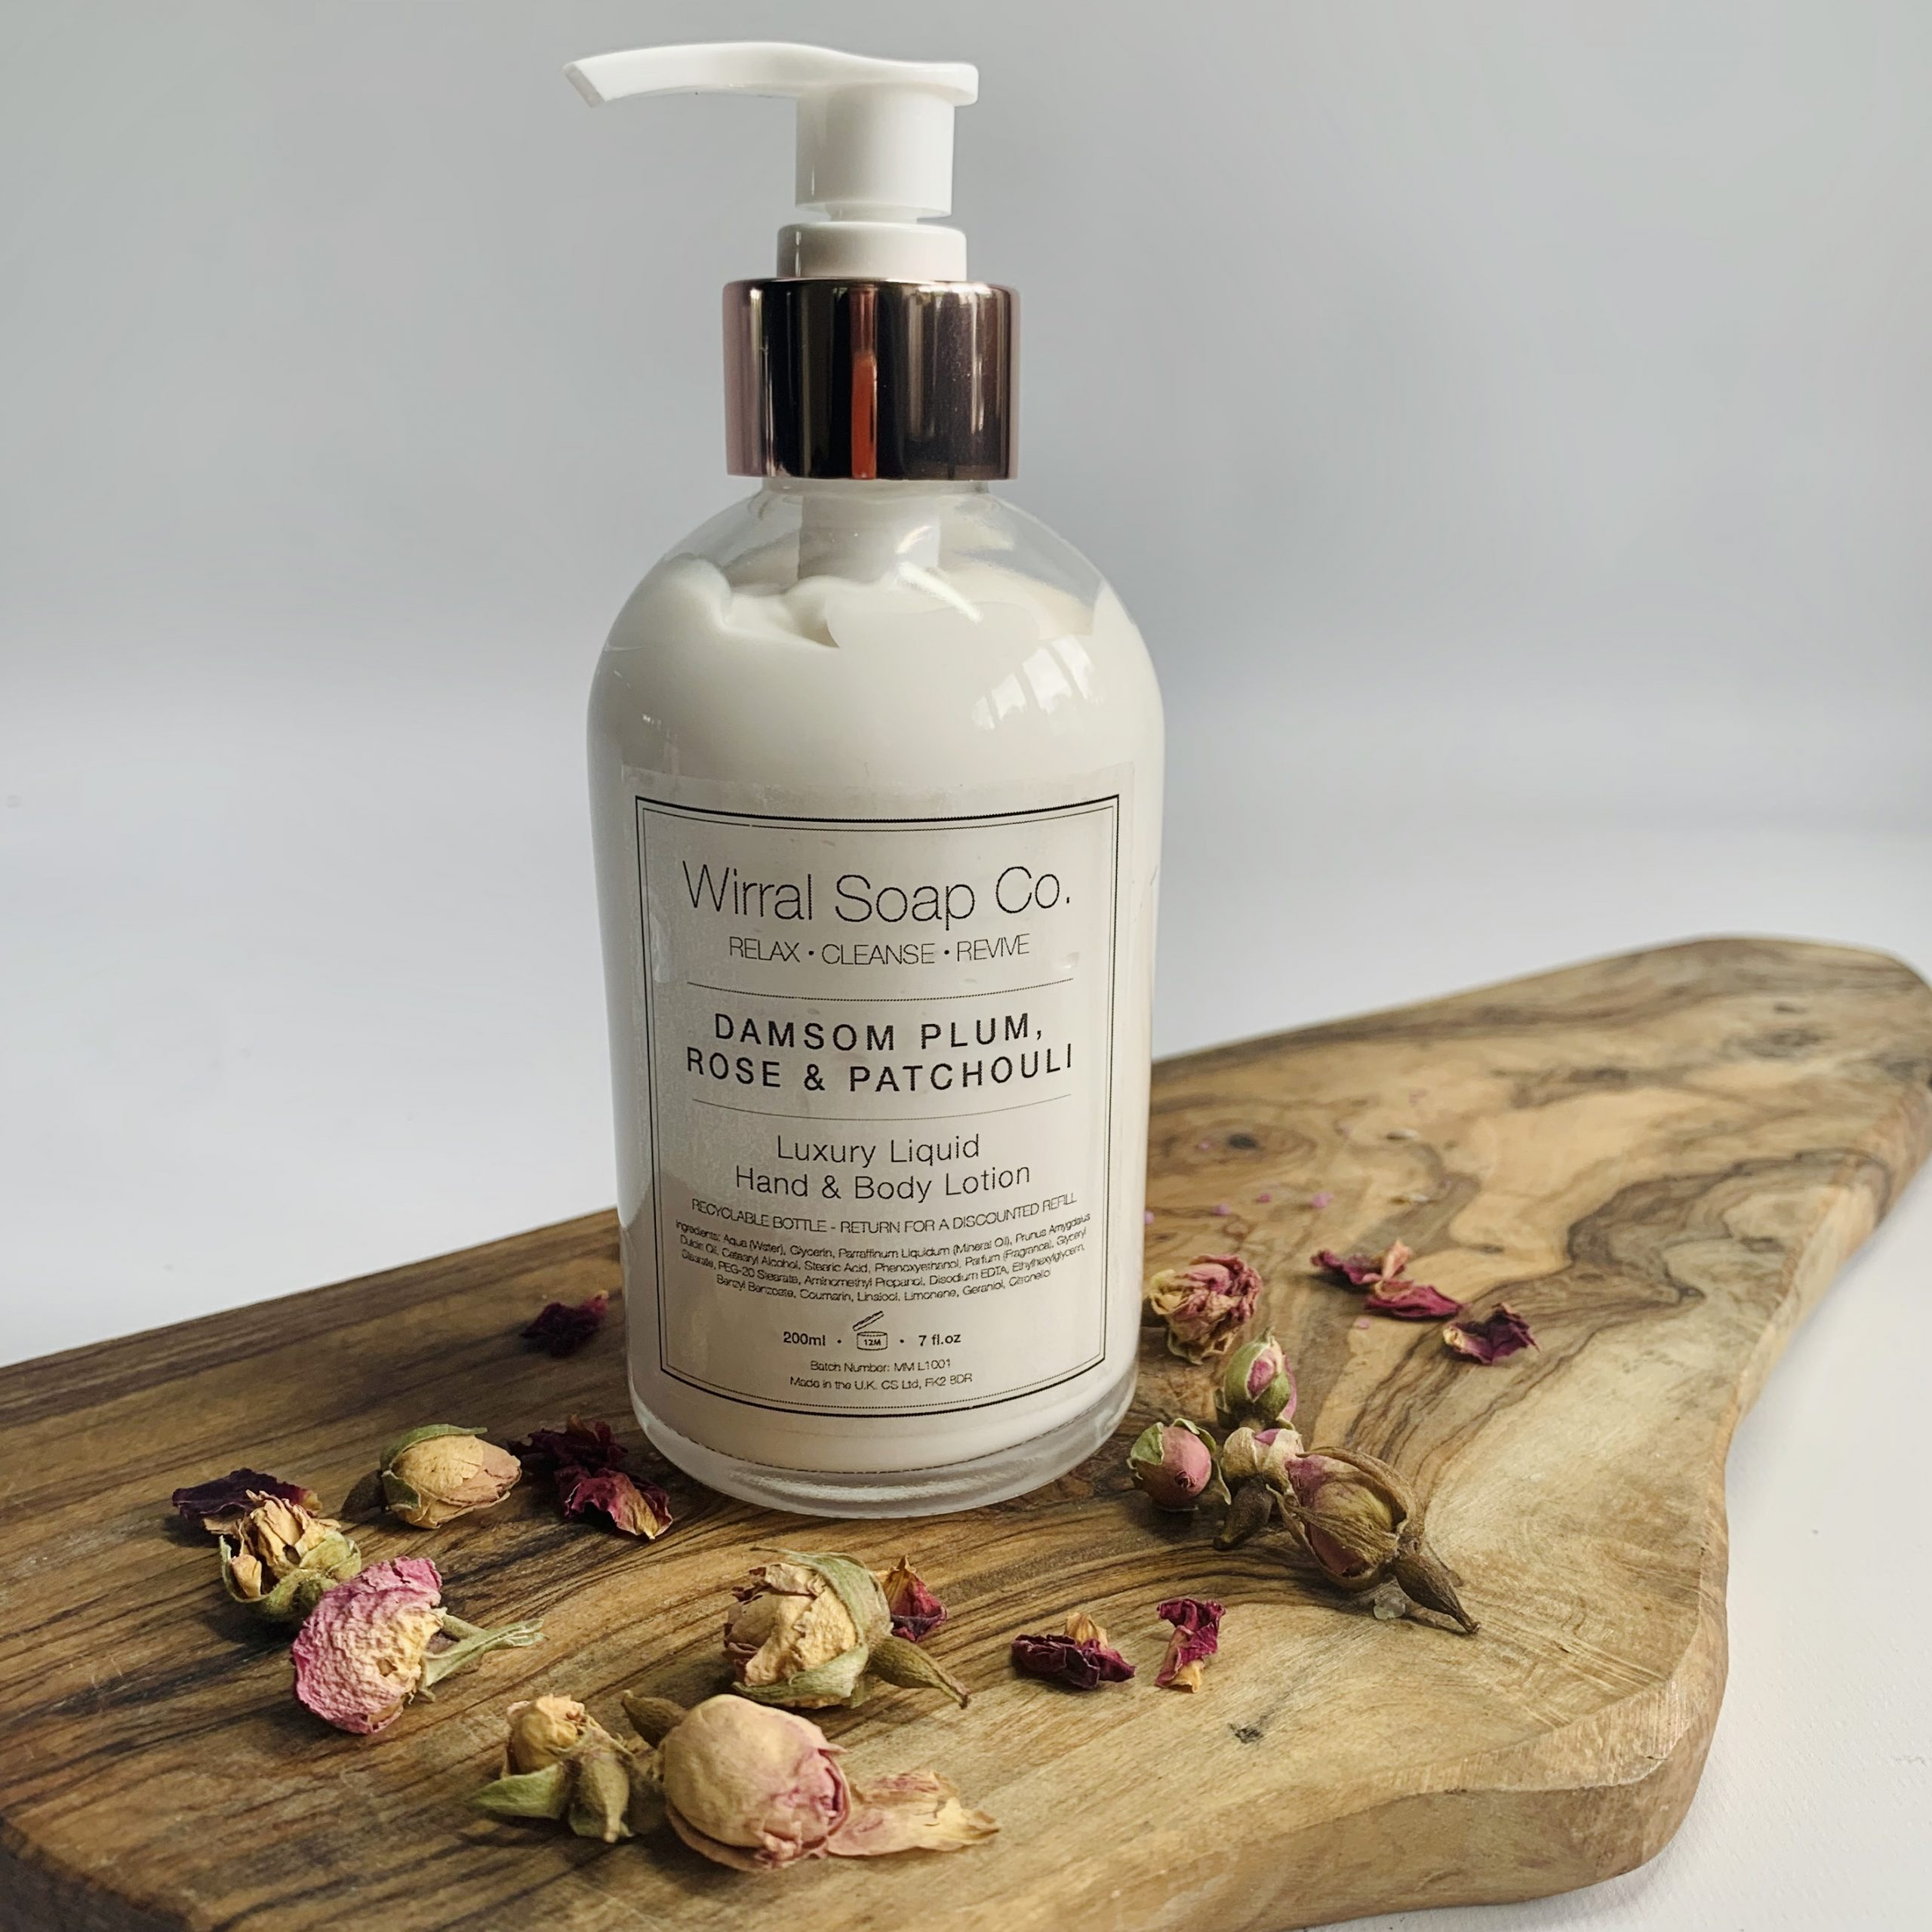 Luxury Liquid Hand & Body Lotion